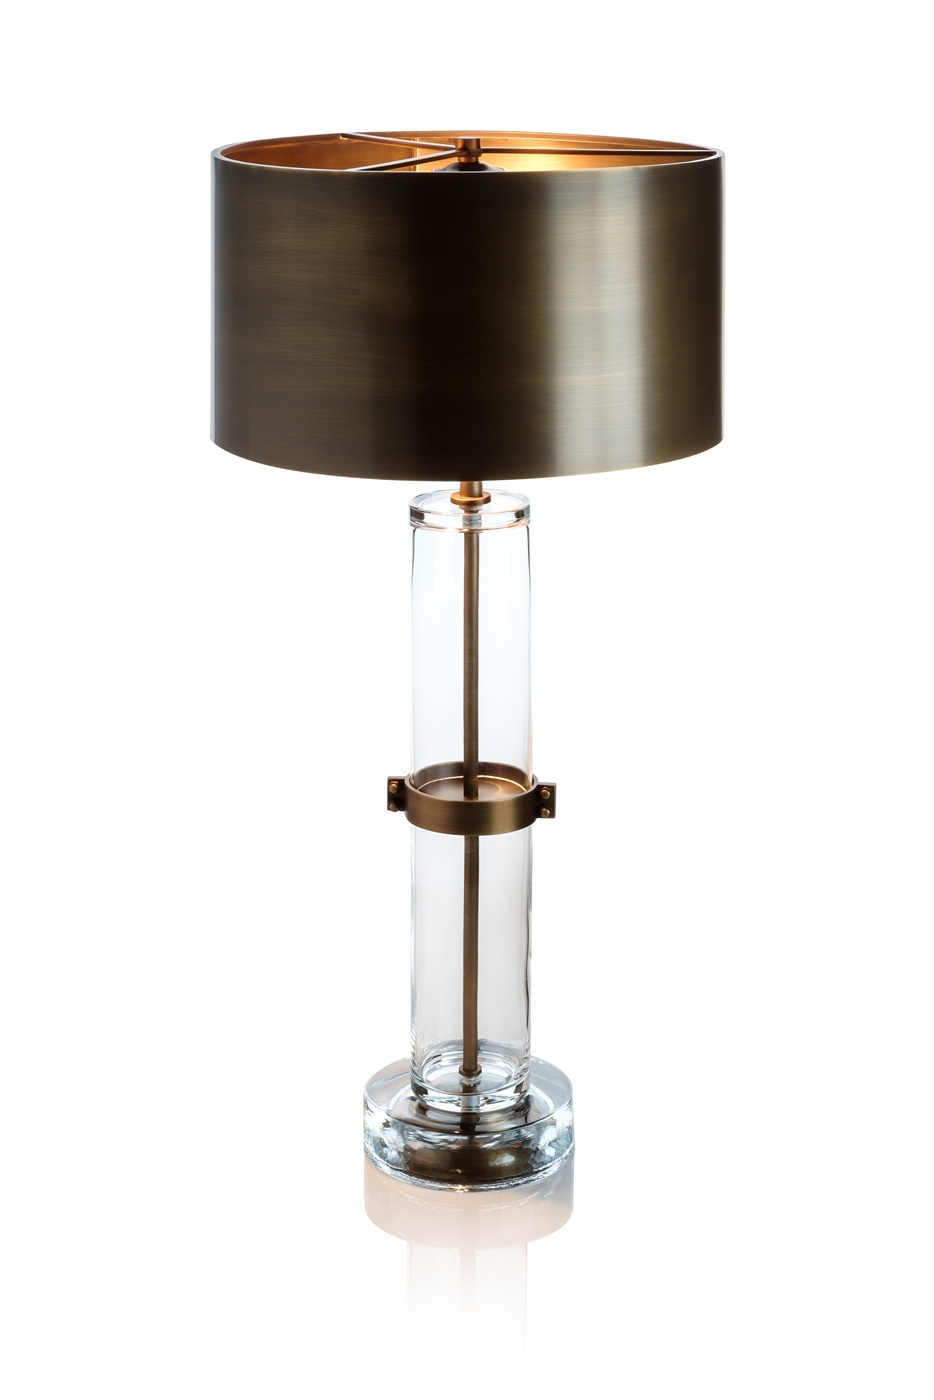 lighting view all table lamps view all villa lumi lighting table lamps. Black Bedroom Furniture Sets. Home Design Ideas